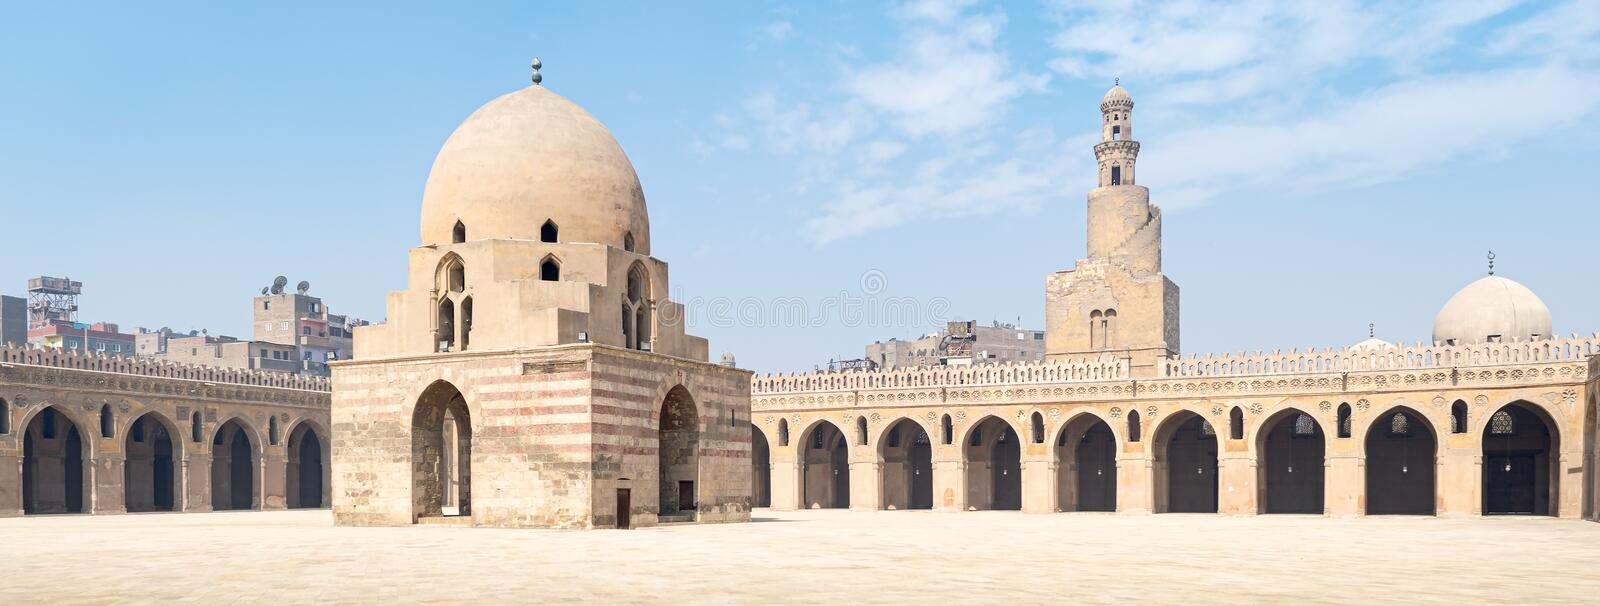 Cour d'Ibn Tulun Mosque image stock